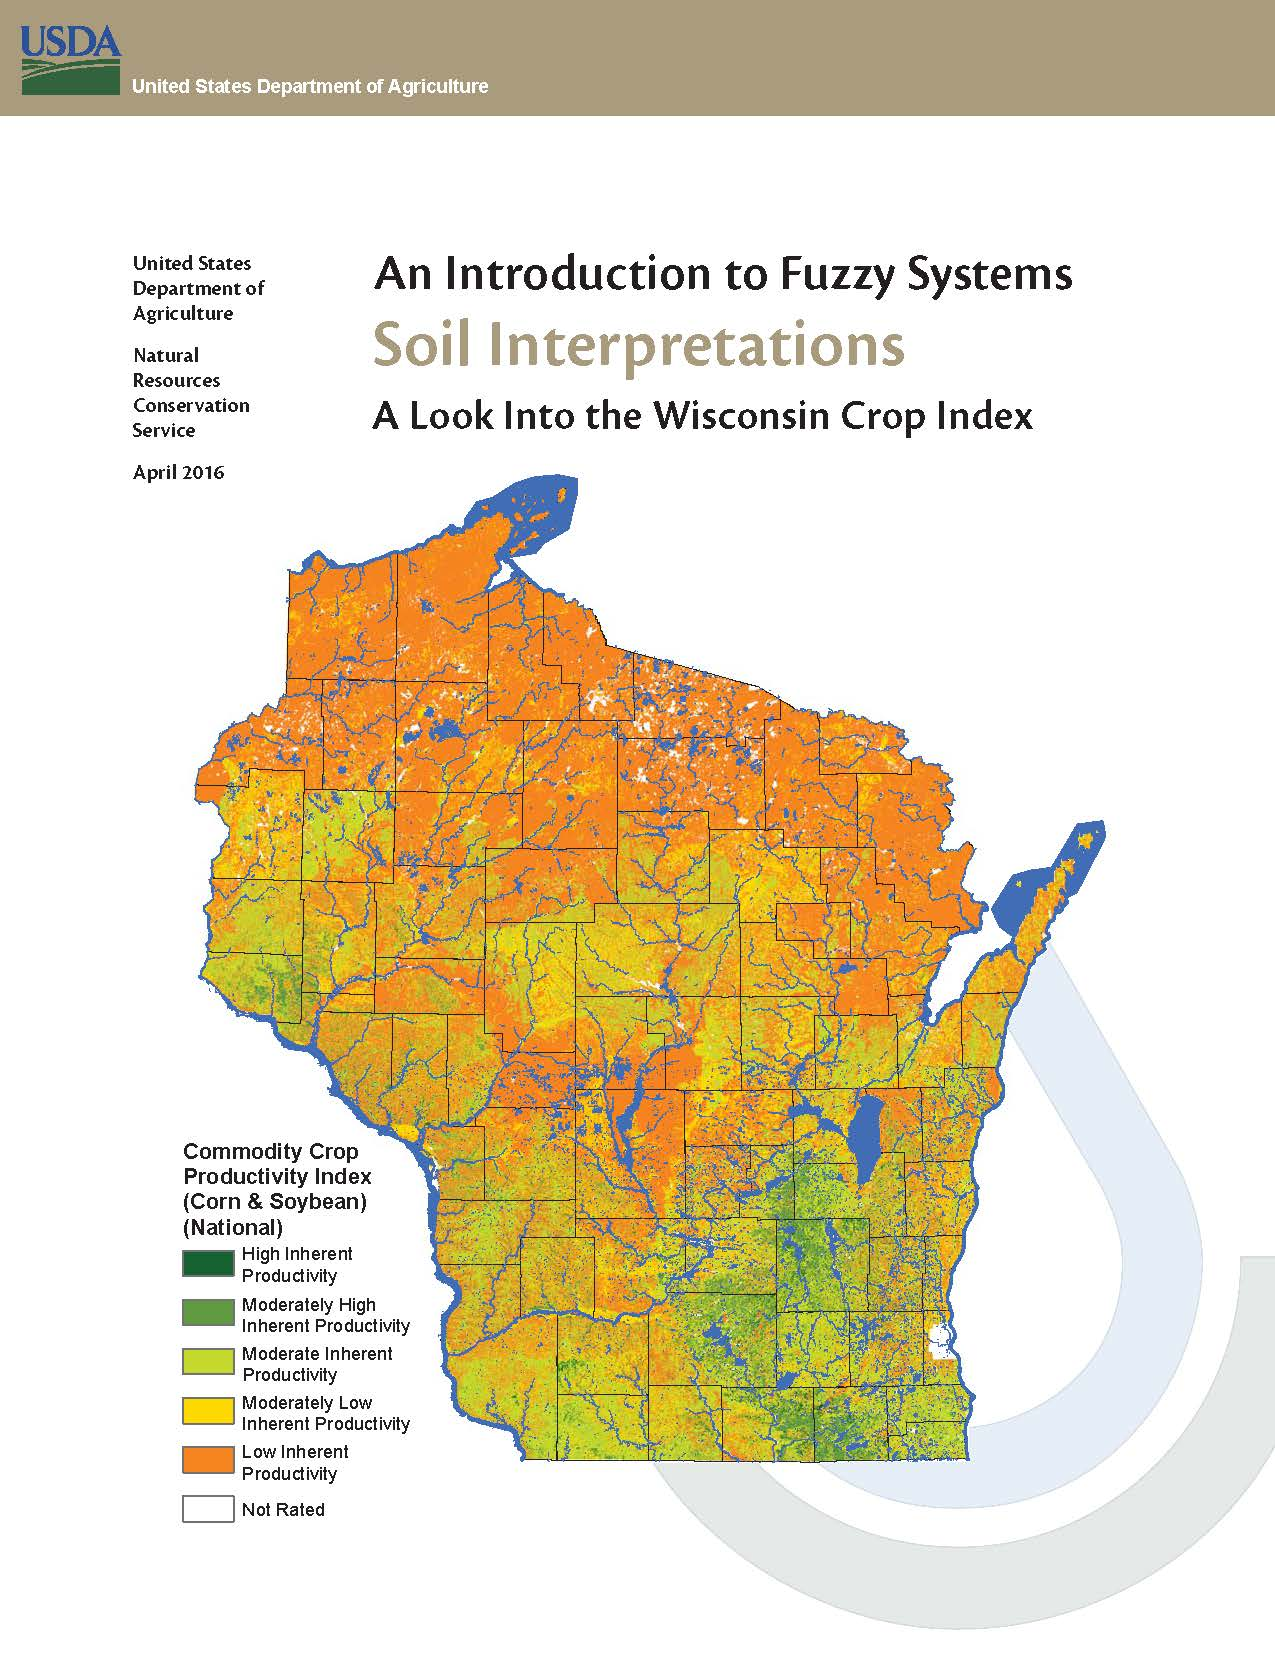 Introduction to Fuzzy Systems - Soil Interpretations